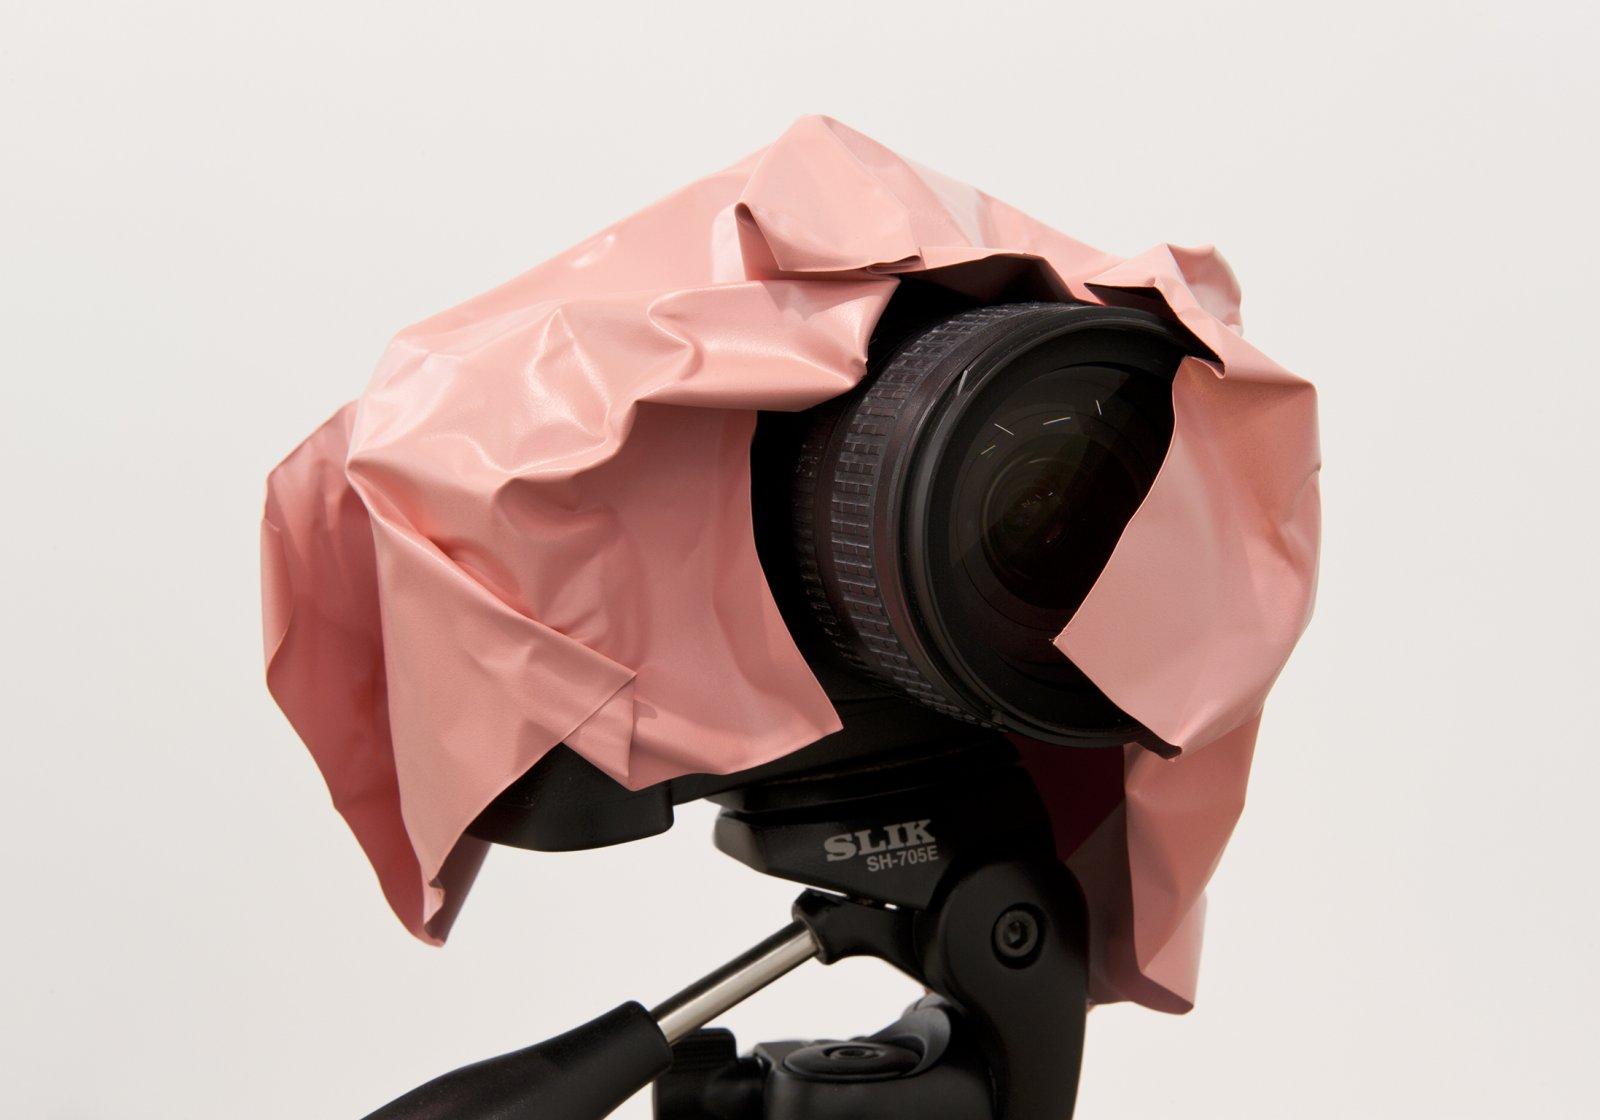 Judy Radul, Object Analysis Spectator Poem (Camera) (detail), 2012, painted copper, camera, tripod, colour photograph, camera: 57 x 26 x 23 in. (145 x 65 x 58 cm), photograph: 8 x 10 x 7 in. (20 x 25 x 18 cm) by Judy Radul